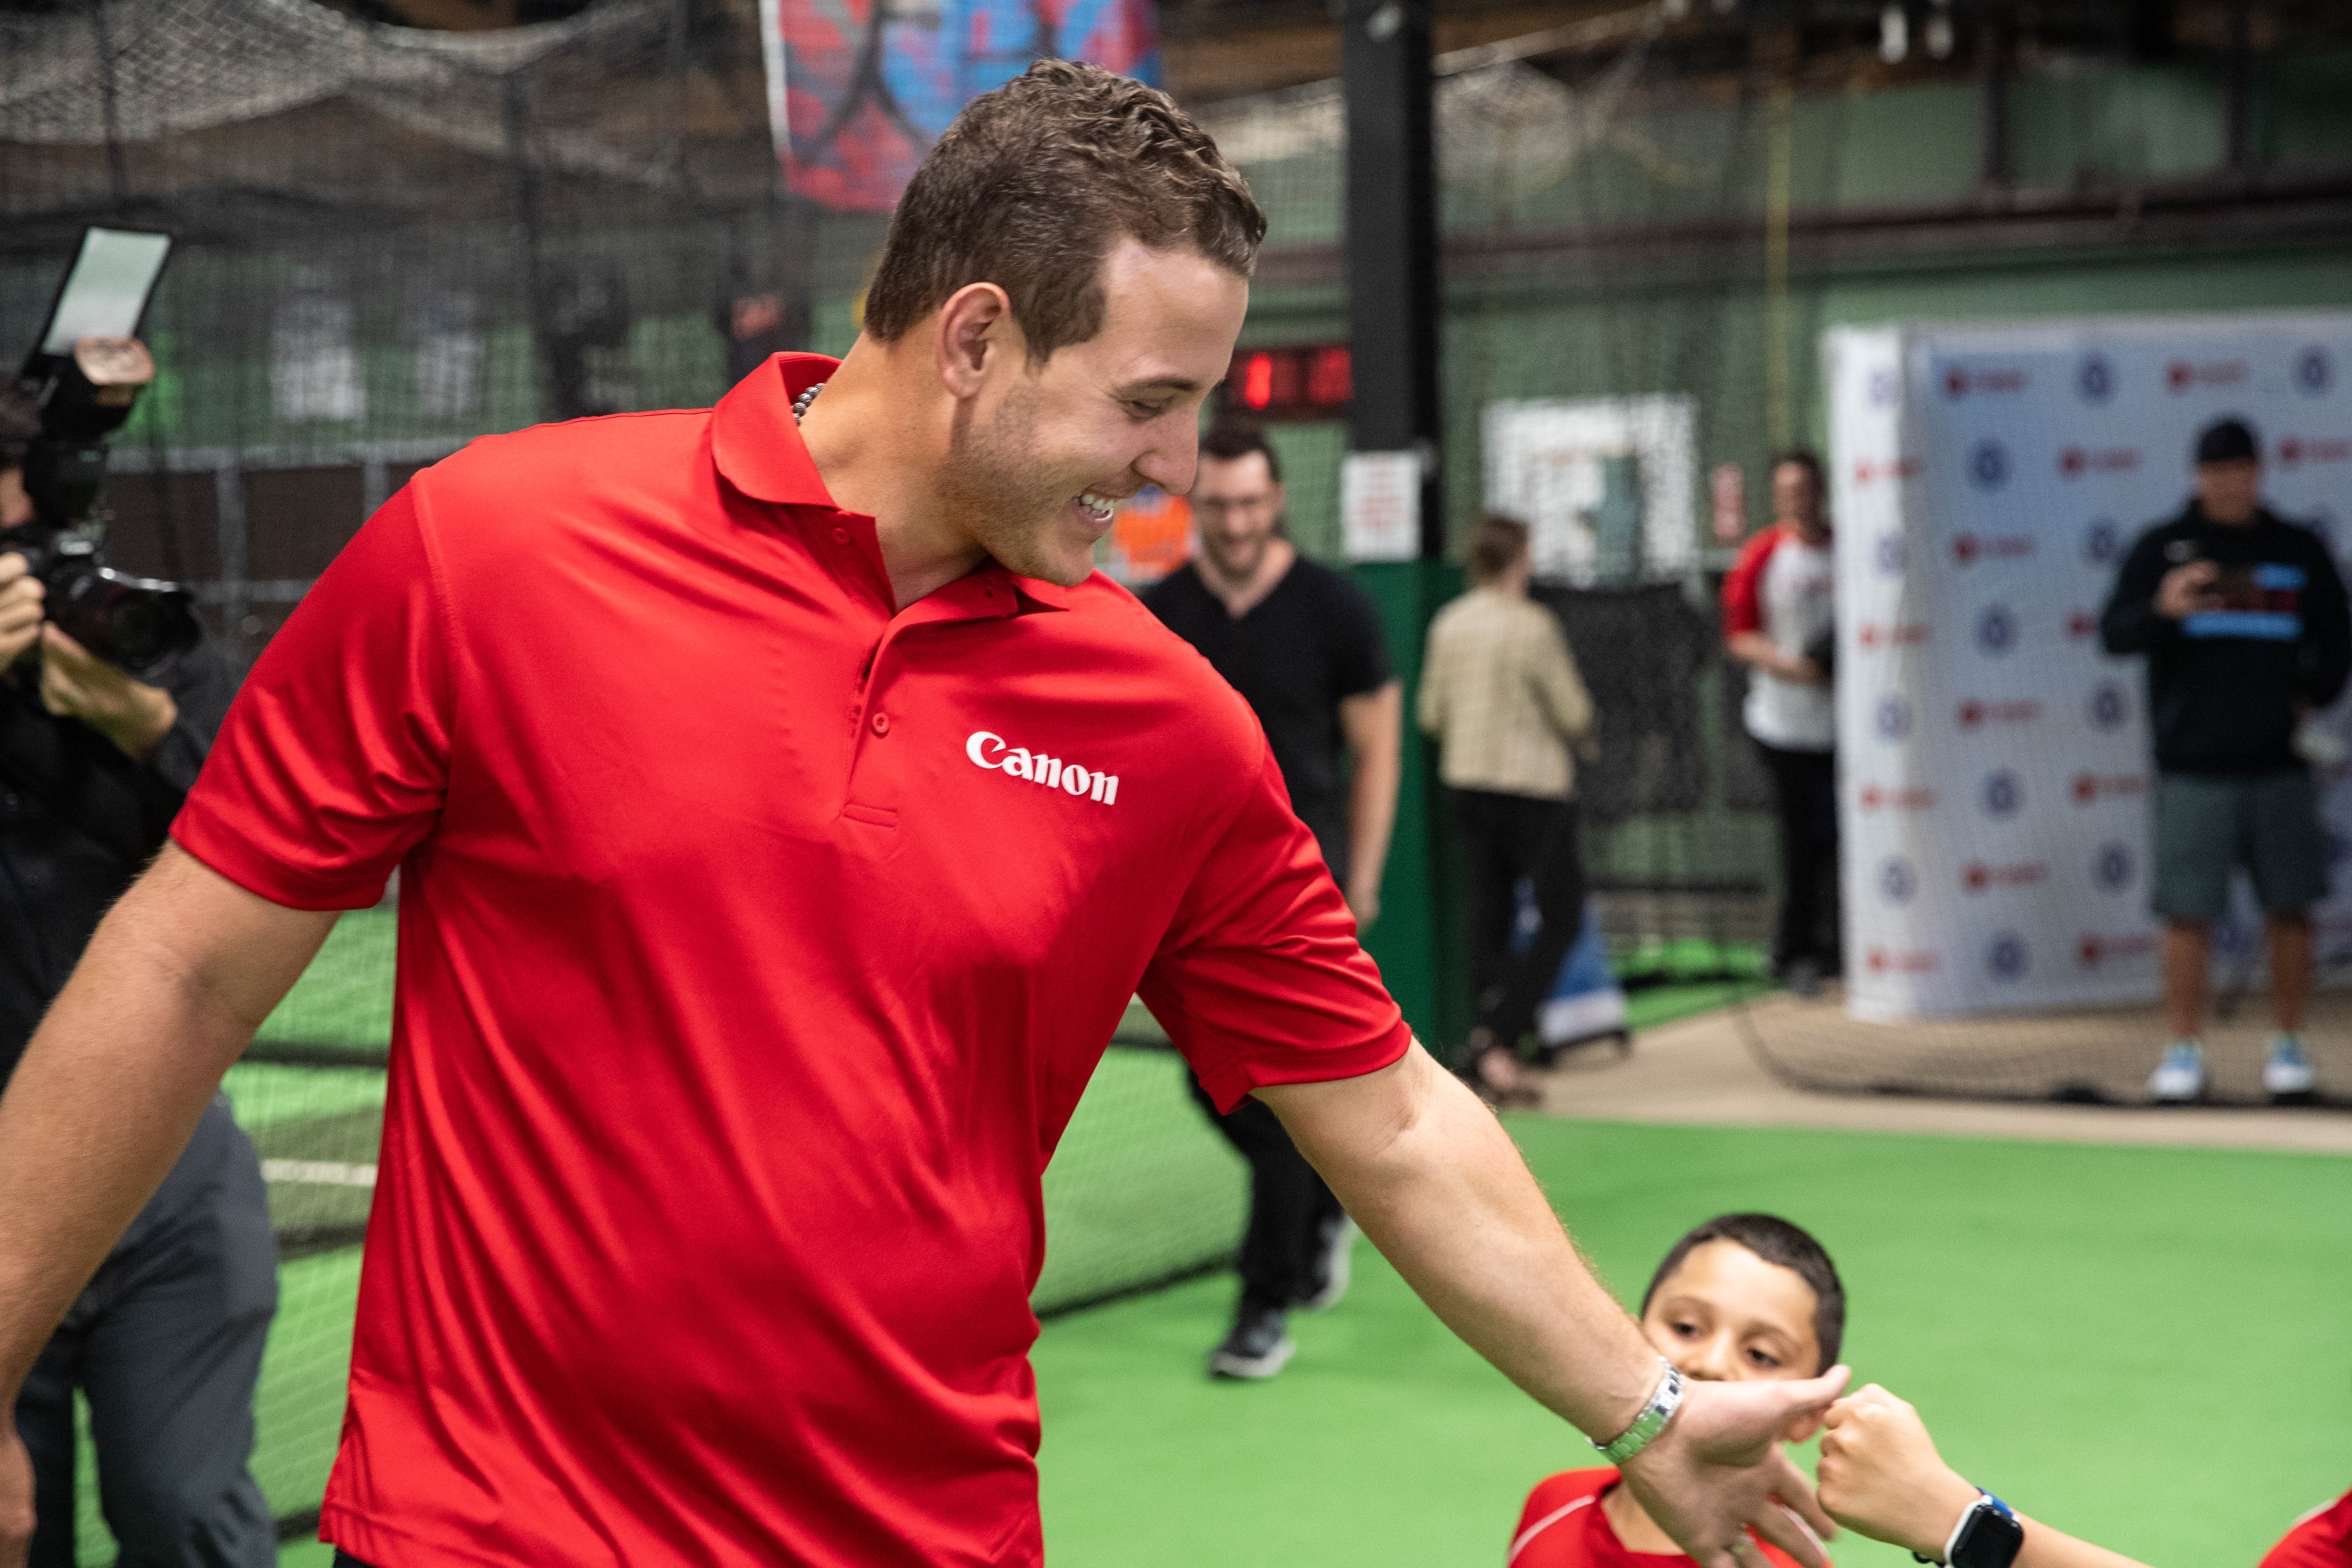 Anthony Rizzo surprises a group of little league players at Bash Sports Academy in Avondale and he's welcomed with smiles and high fives.